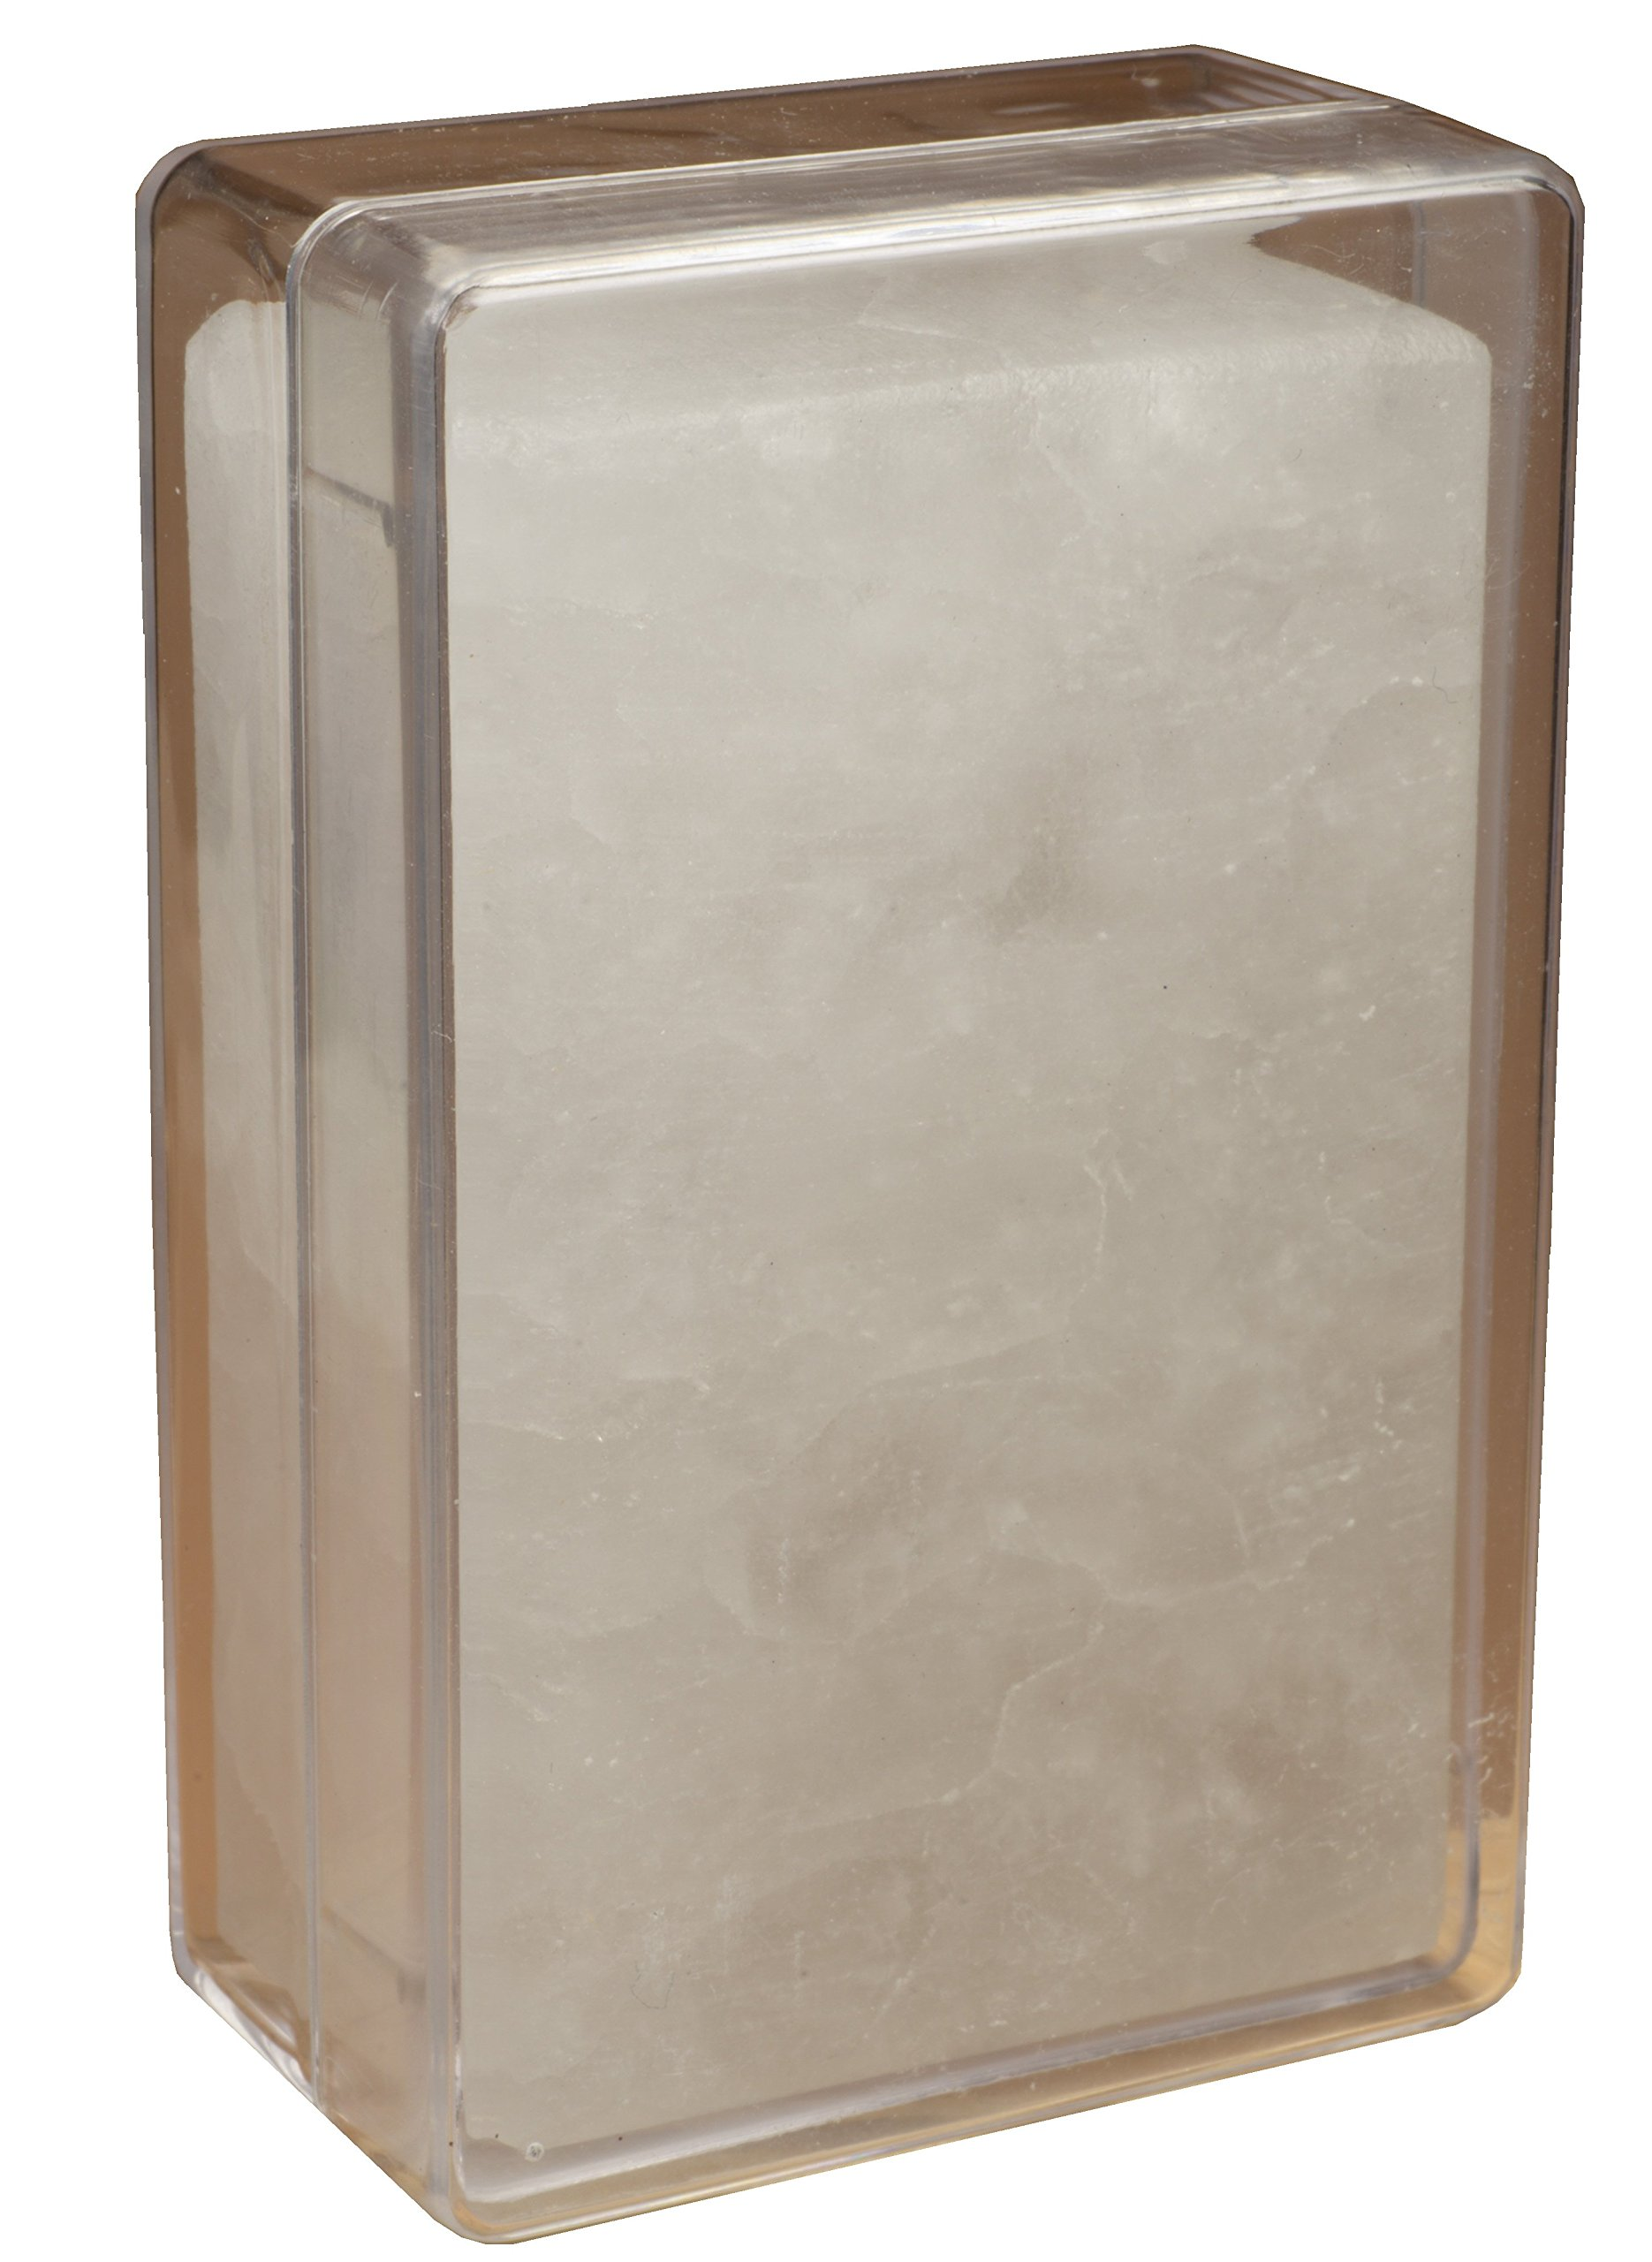 Osma Bloc - Alum Block (Soothes Shaving Irritation) With Clear Perspex Case 100g